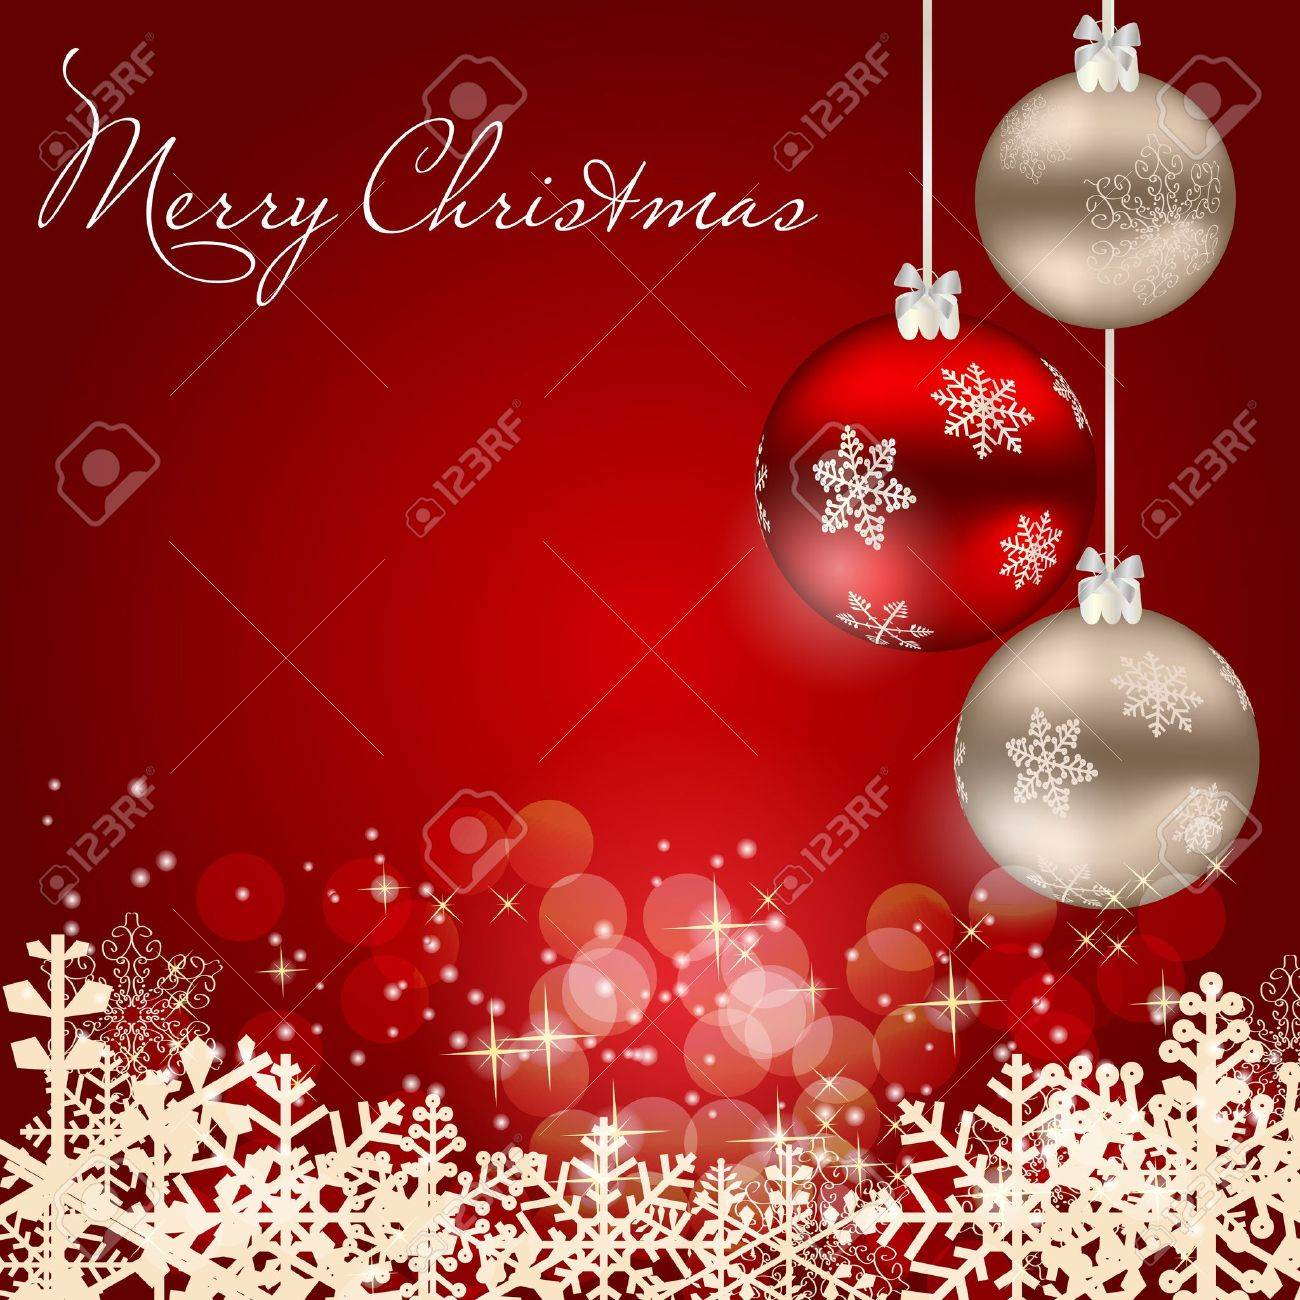 abstract beauty christmas and new year background stock vector 15023861